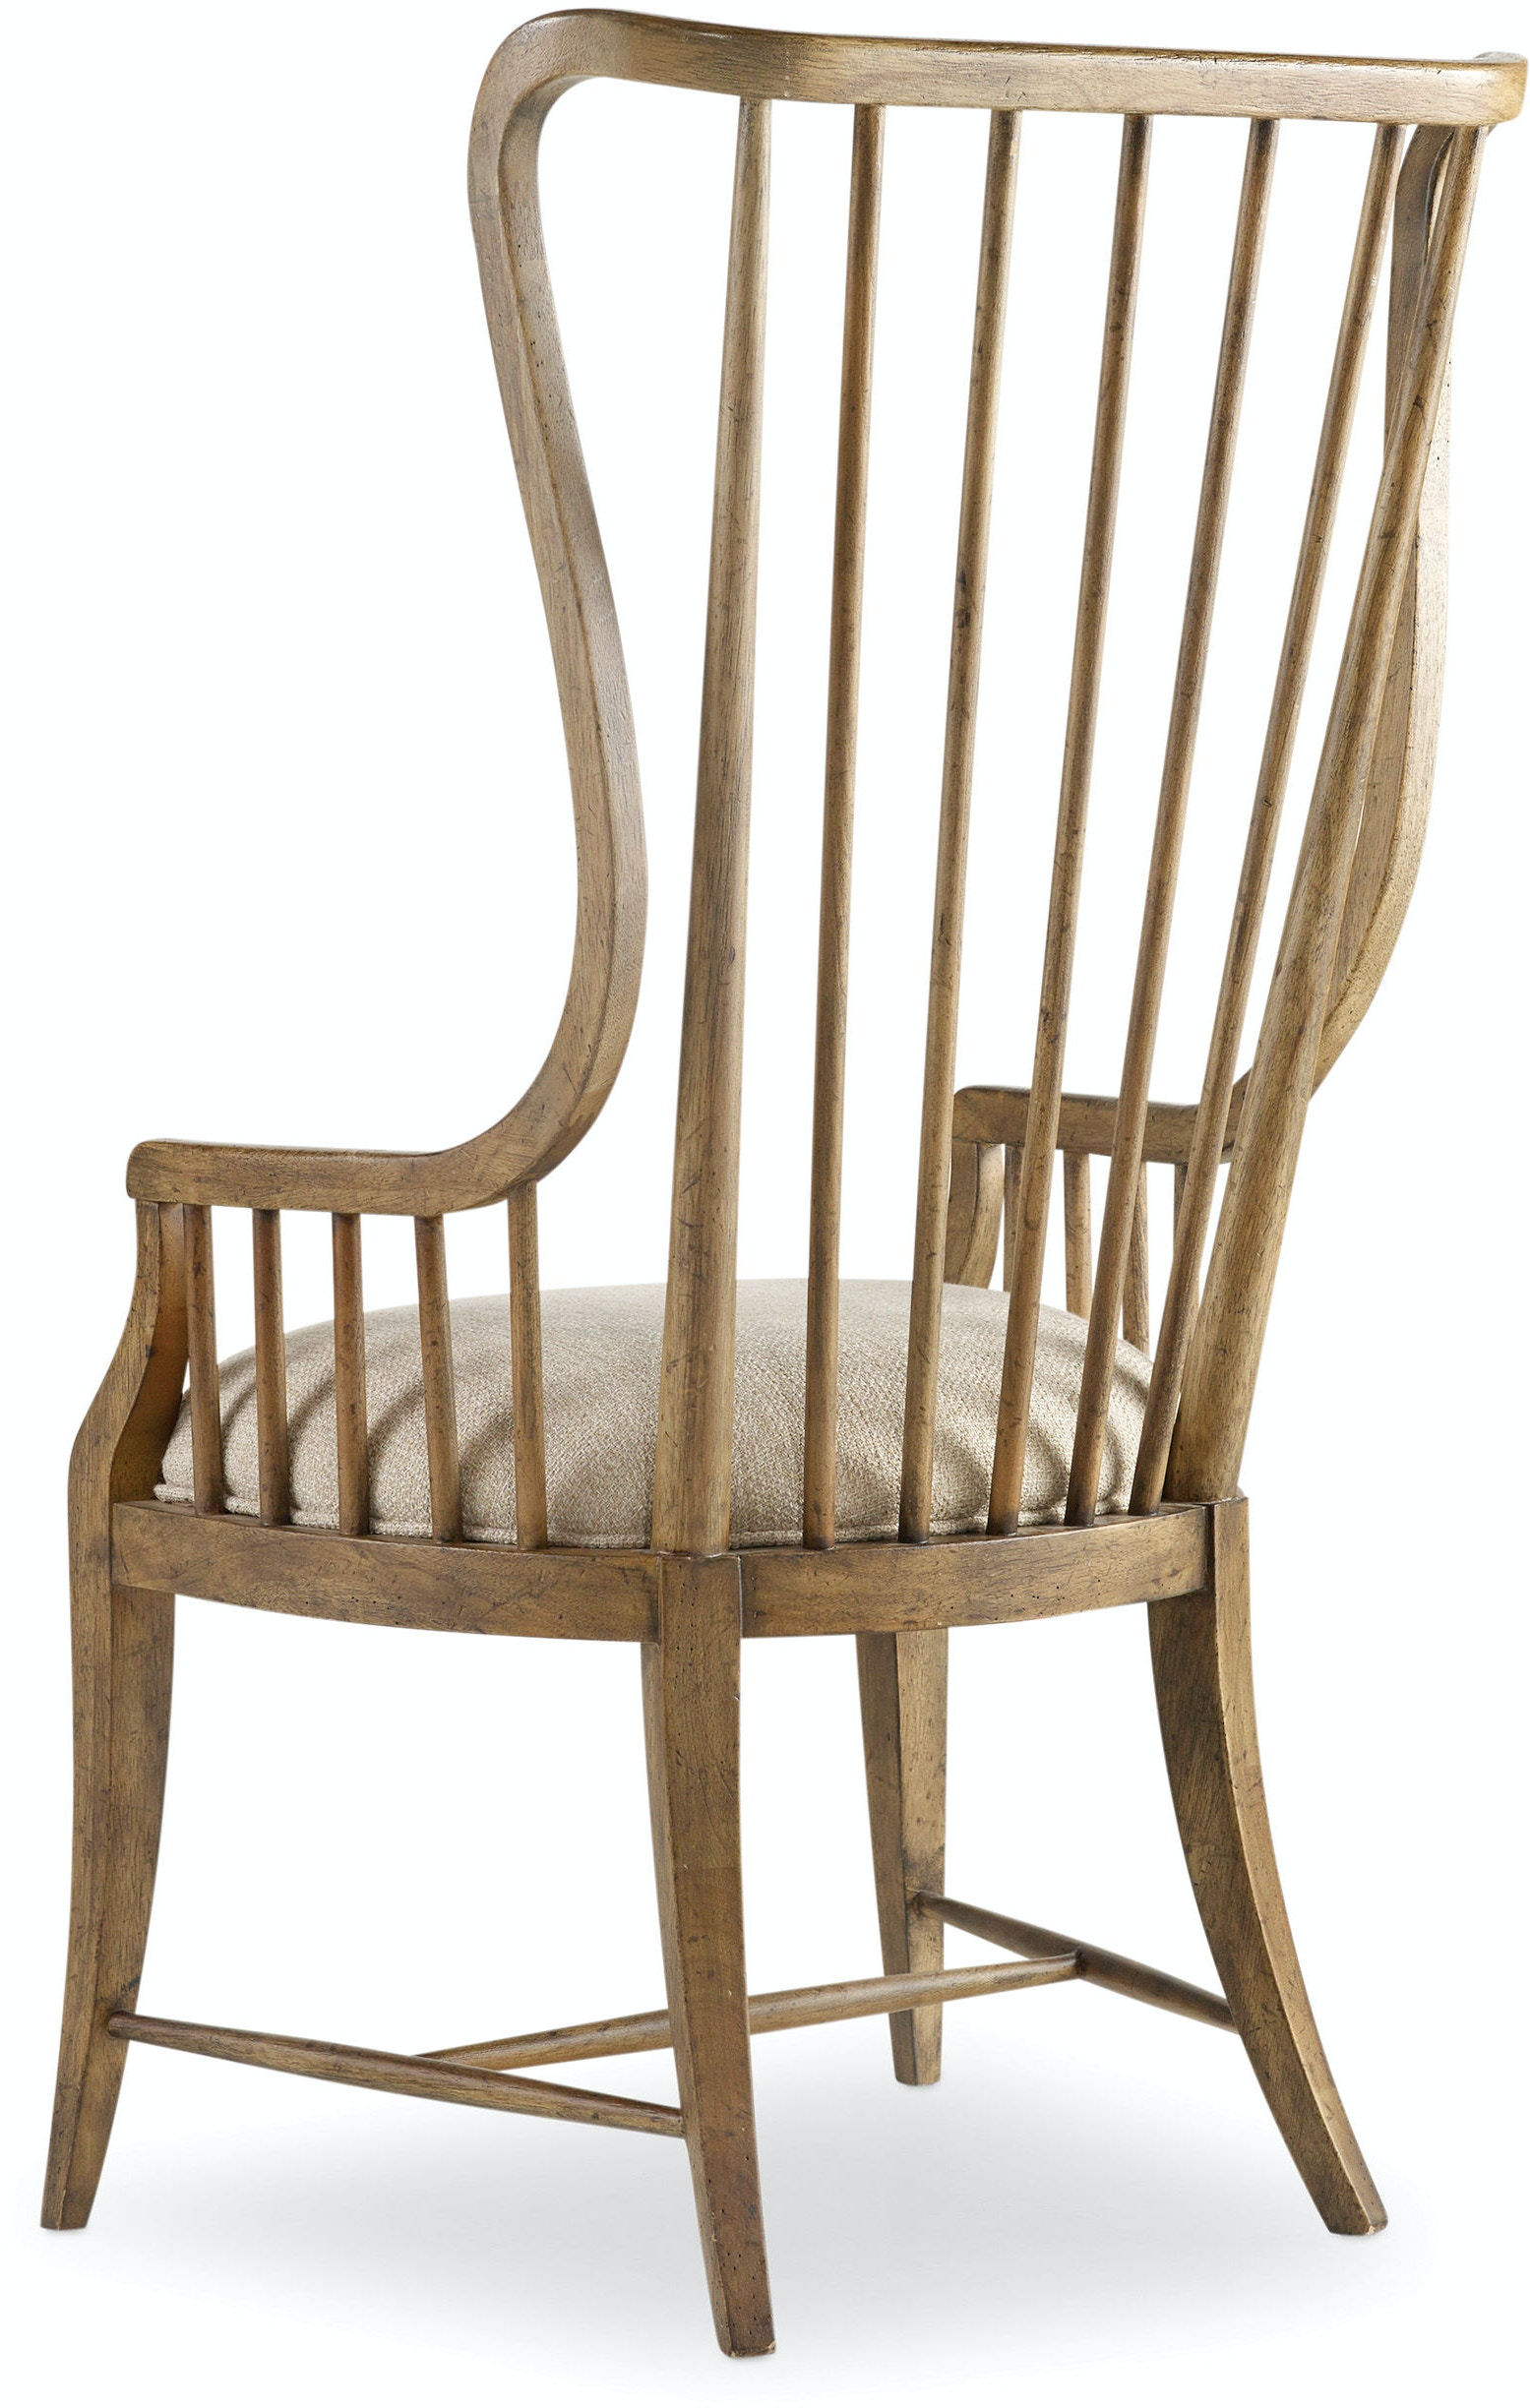 Hooker Furniture Dining Room Sanctuary Tall Spindle Arm Chair 5401